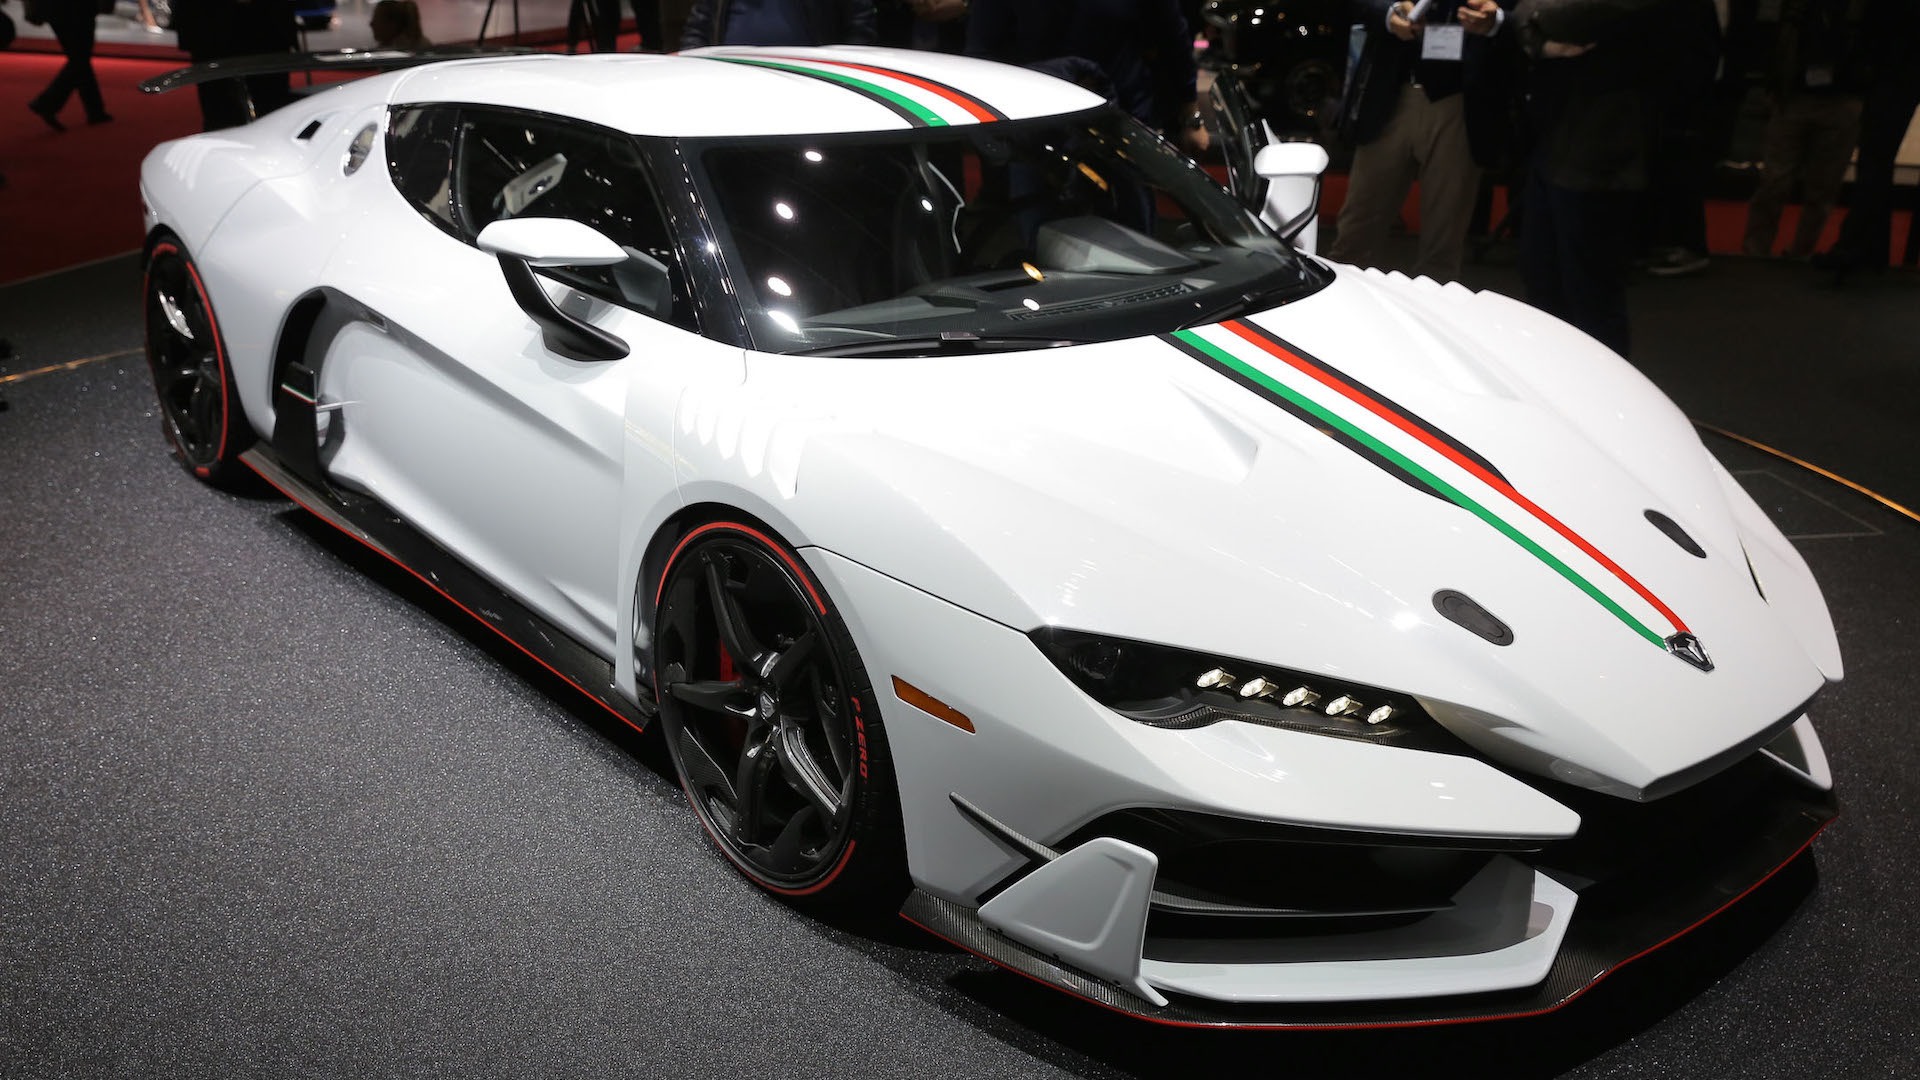 Watch The Italdesign Zerouno Be Born In Behind,The,Scenes Video